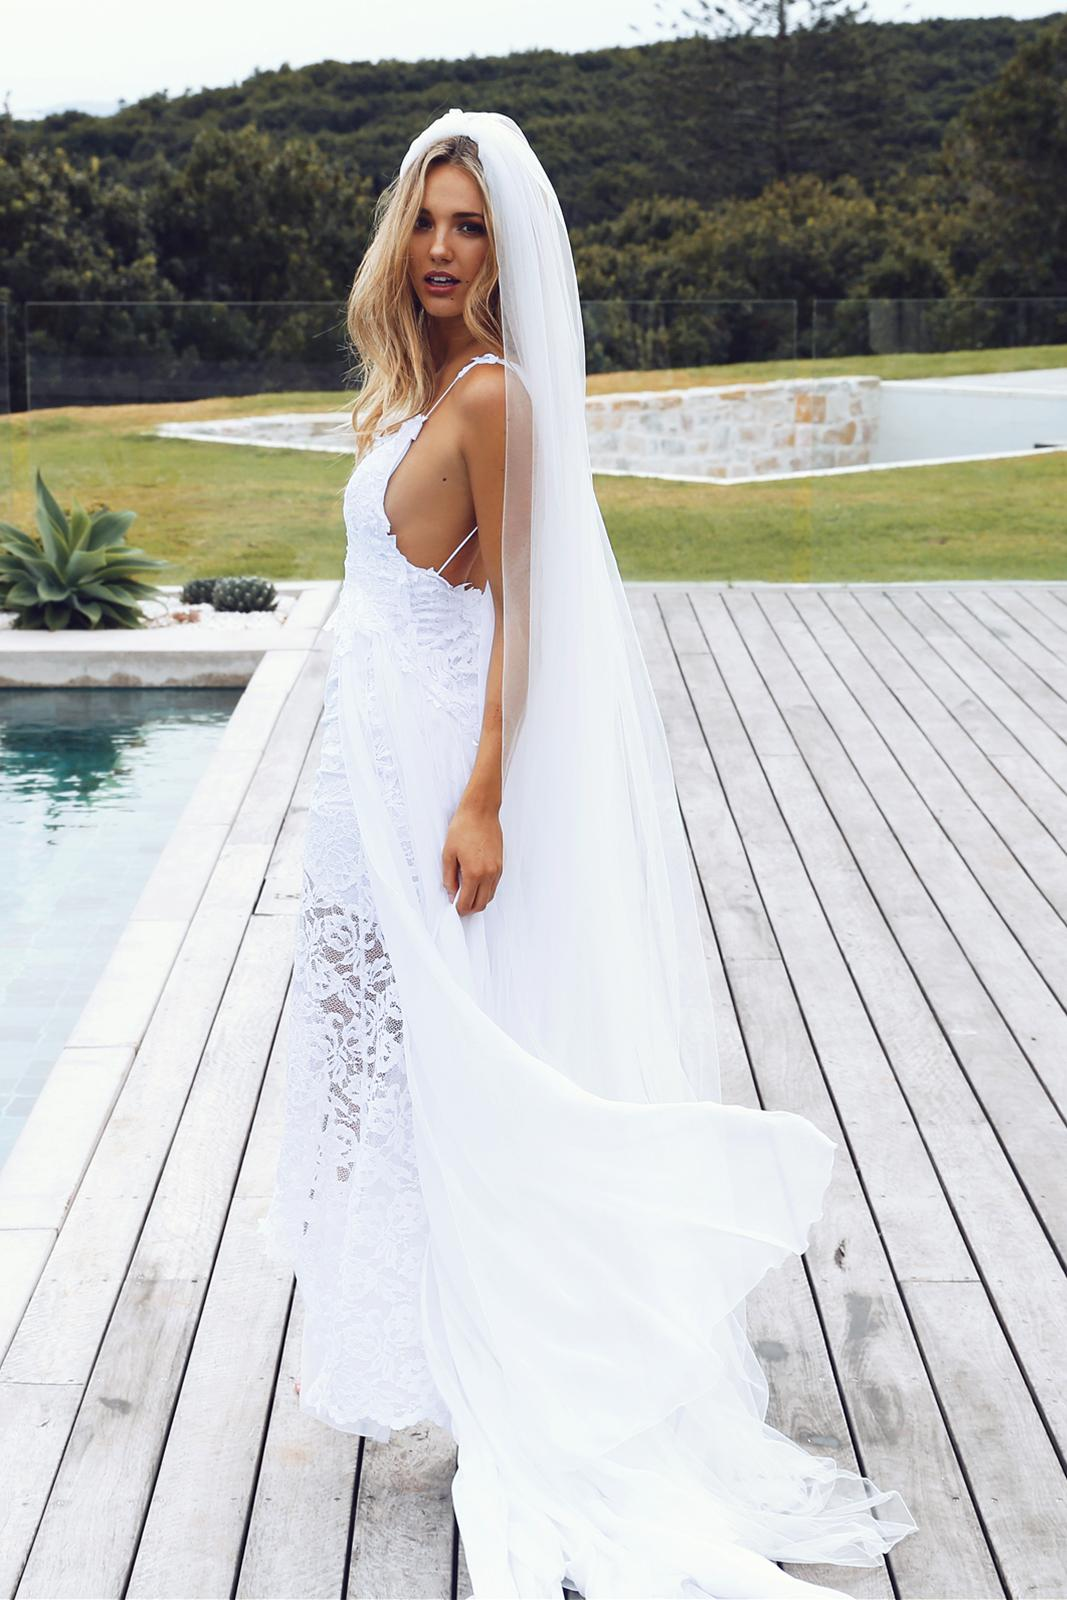 This Is The Most Popular Wedding Dress On Pinterest Page 2 M2woman,Wedding Dresses For Tall Curvy Brides